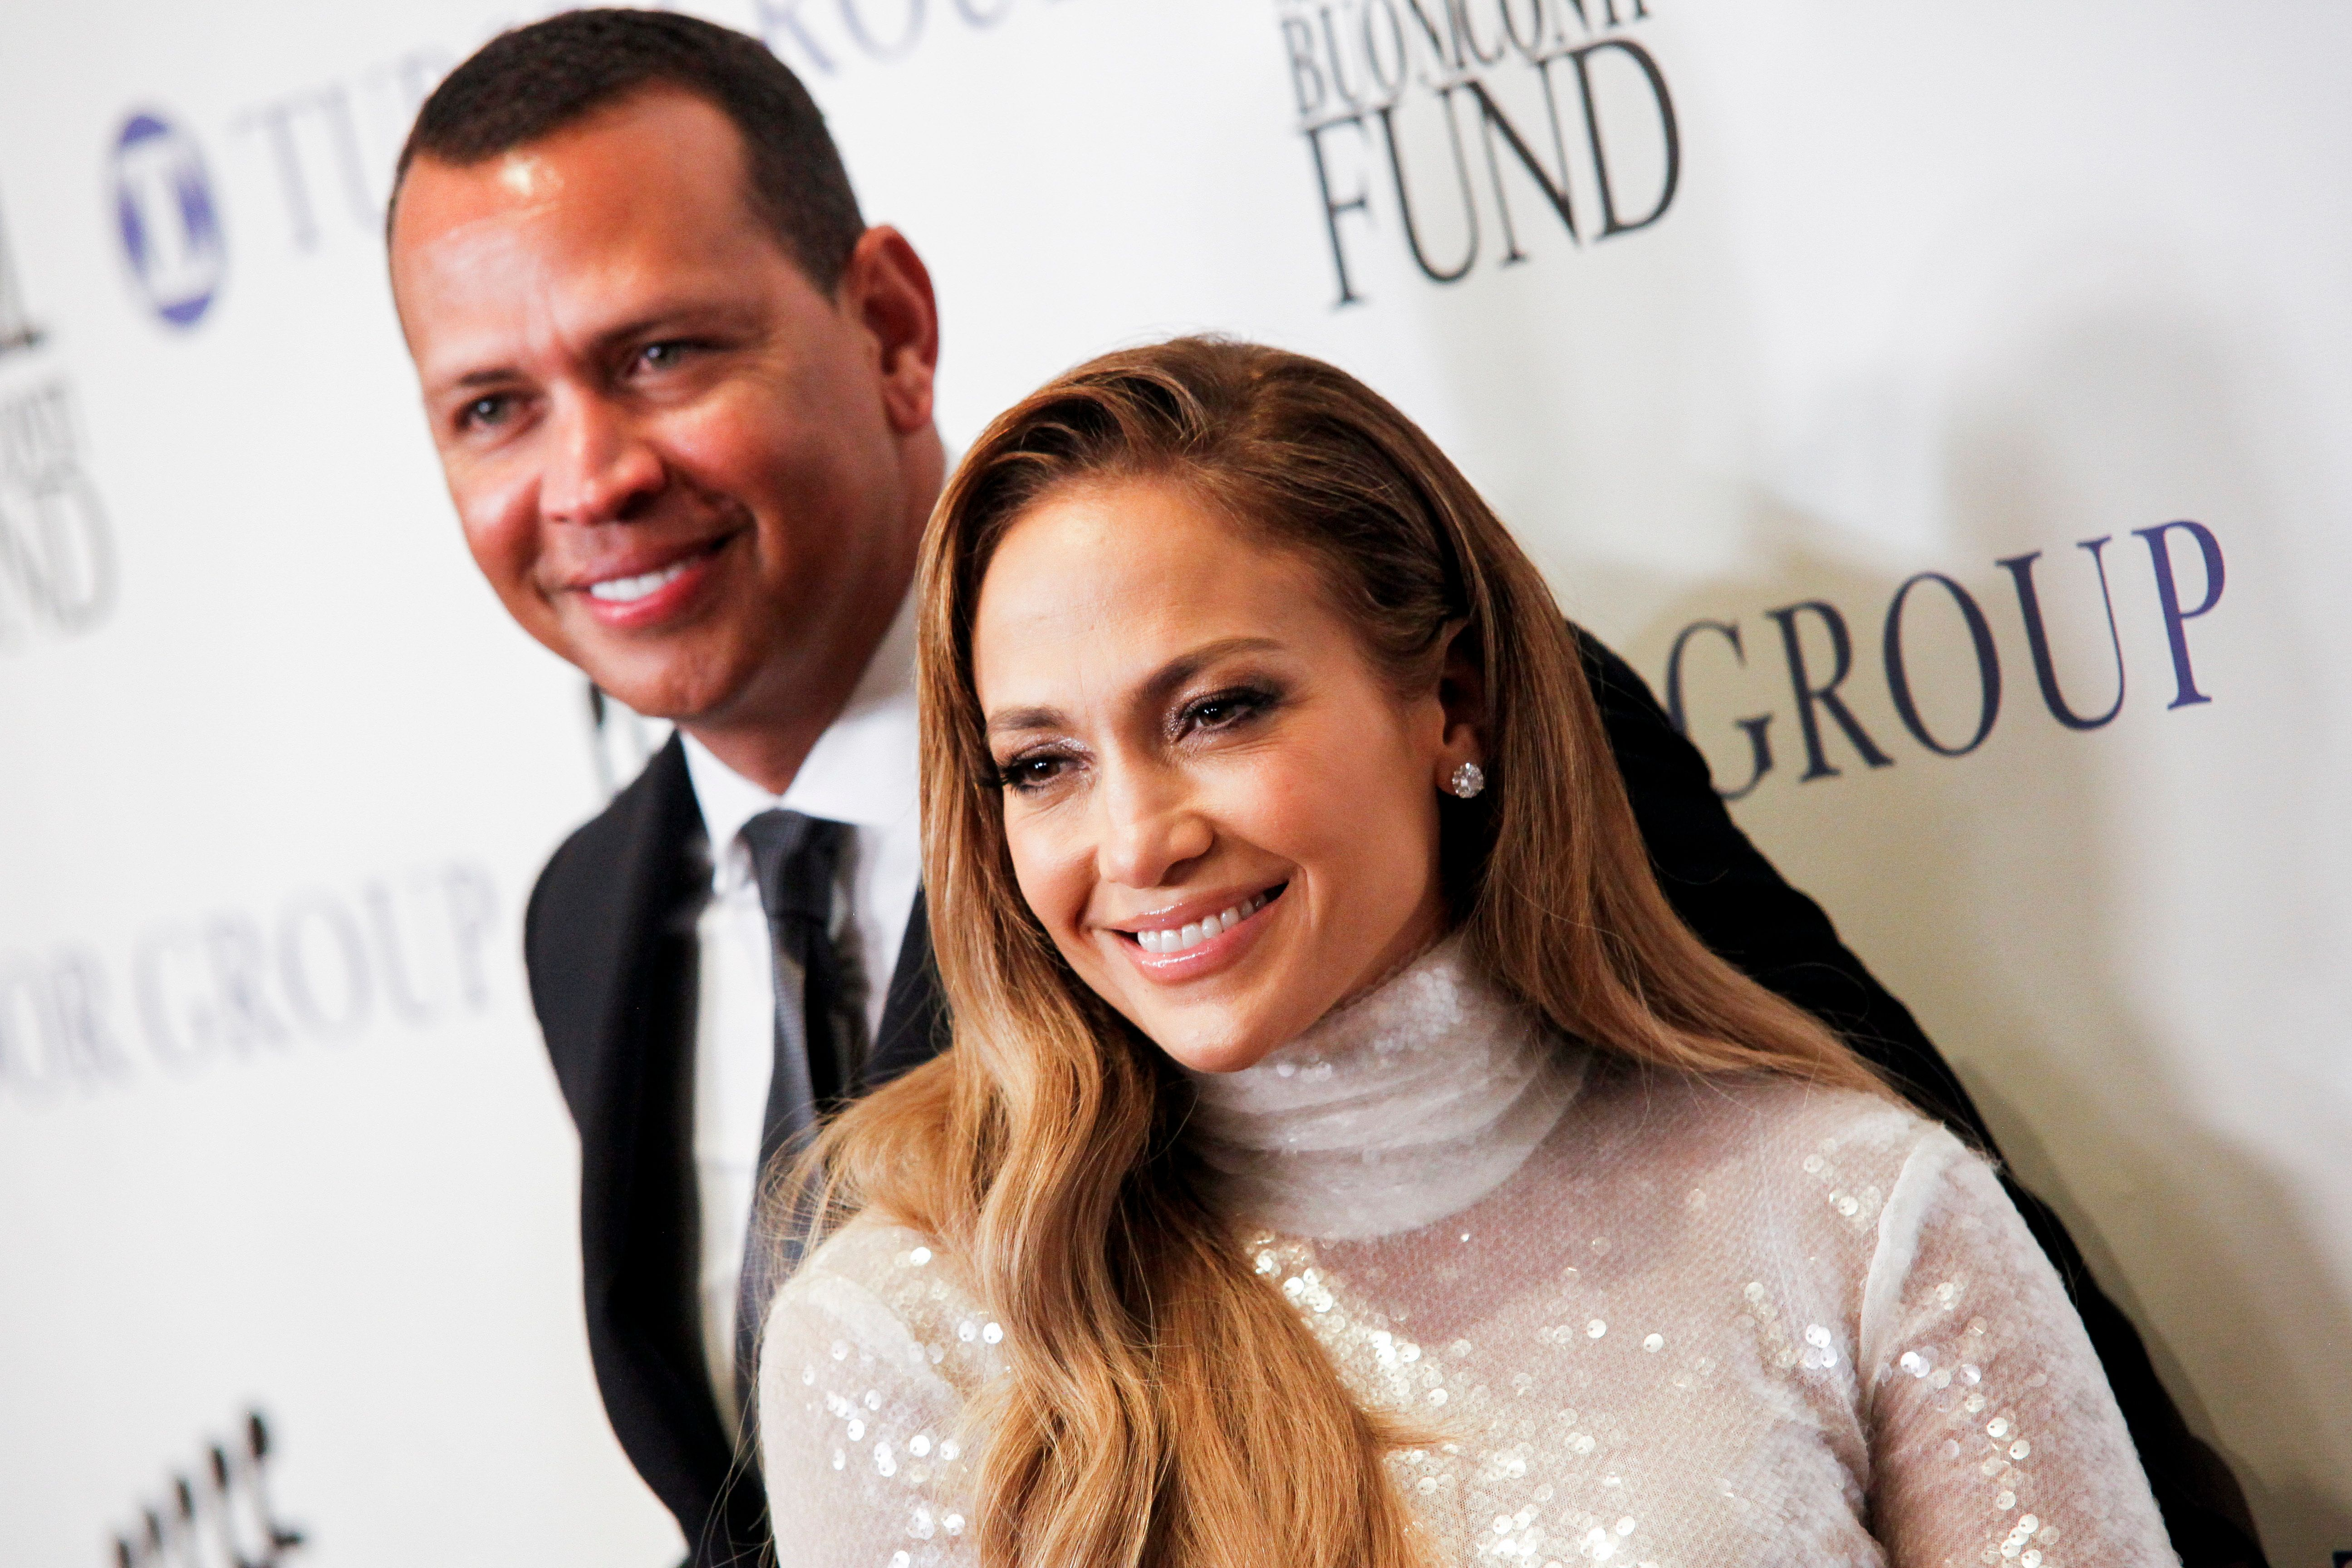 Alex Rodriguez, left, and Jennifer Lopez, right, attend the 33rd annual Great Sports Legends Dinner at the New York Hilton Midtown on Monday, Sept. 24, 2018, in New York. (Photo by Andy Kropa/Invision/AP)